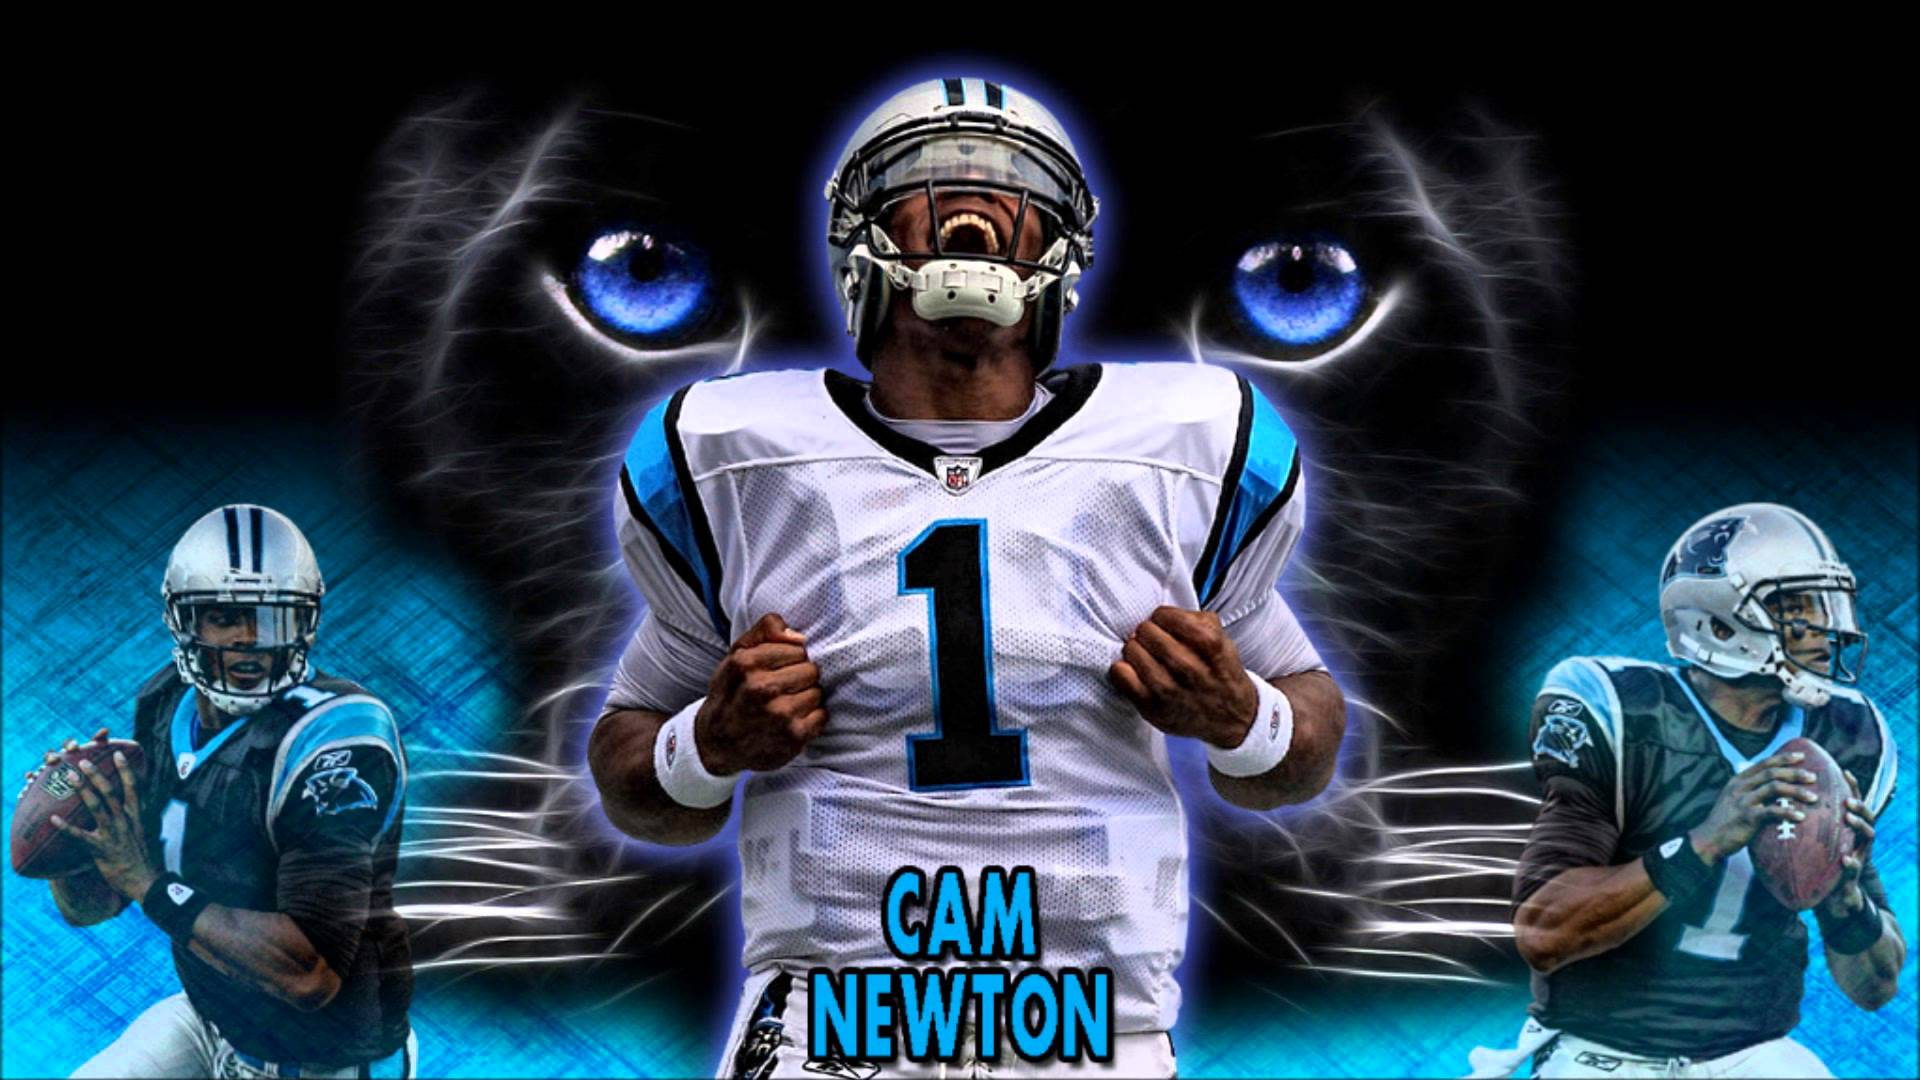 15 Cam Newton HD Wallpapers | Backgrounds - Wallpaper Abyss